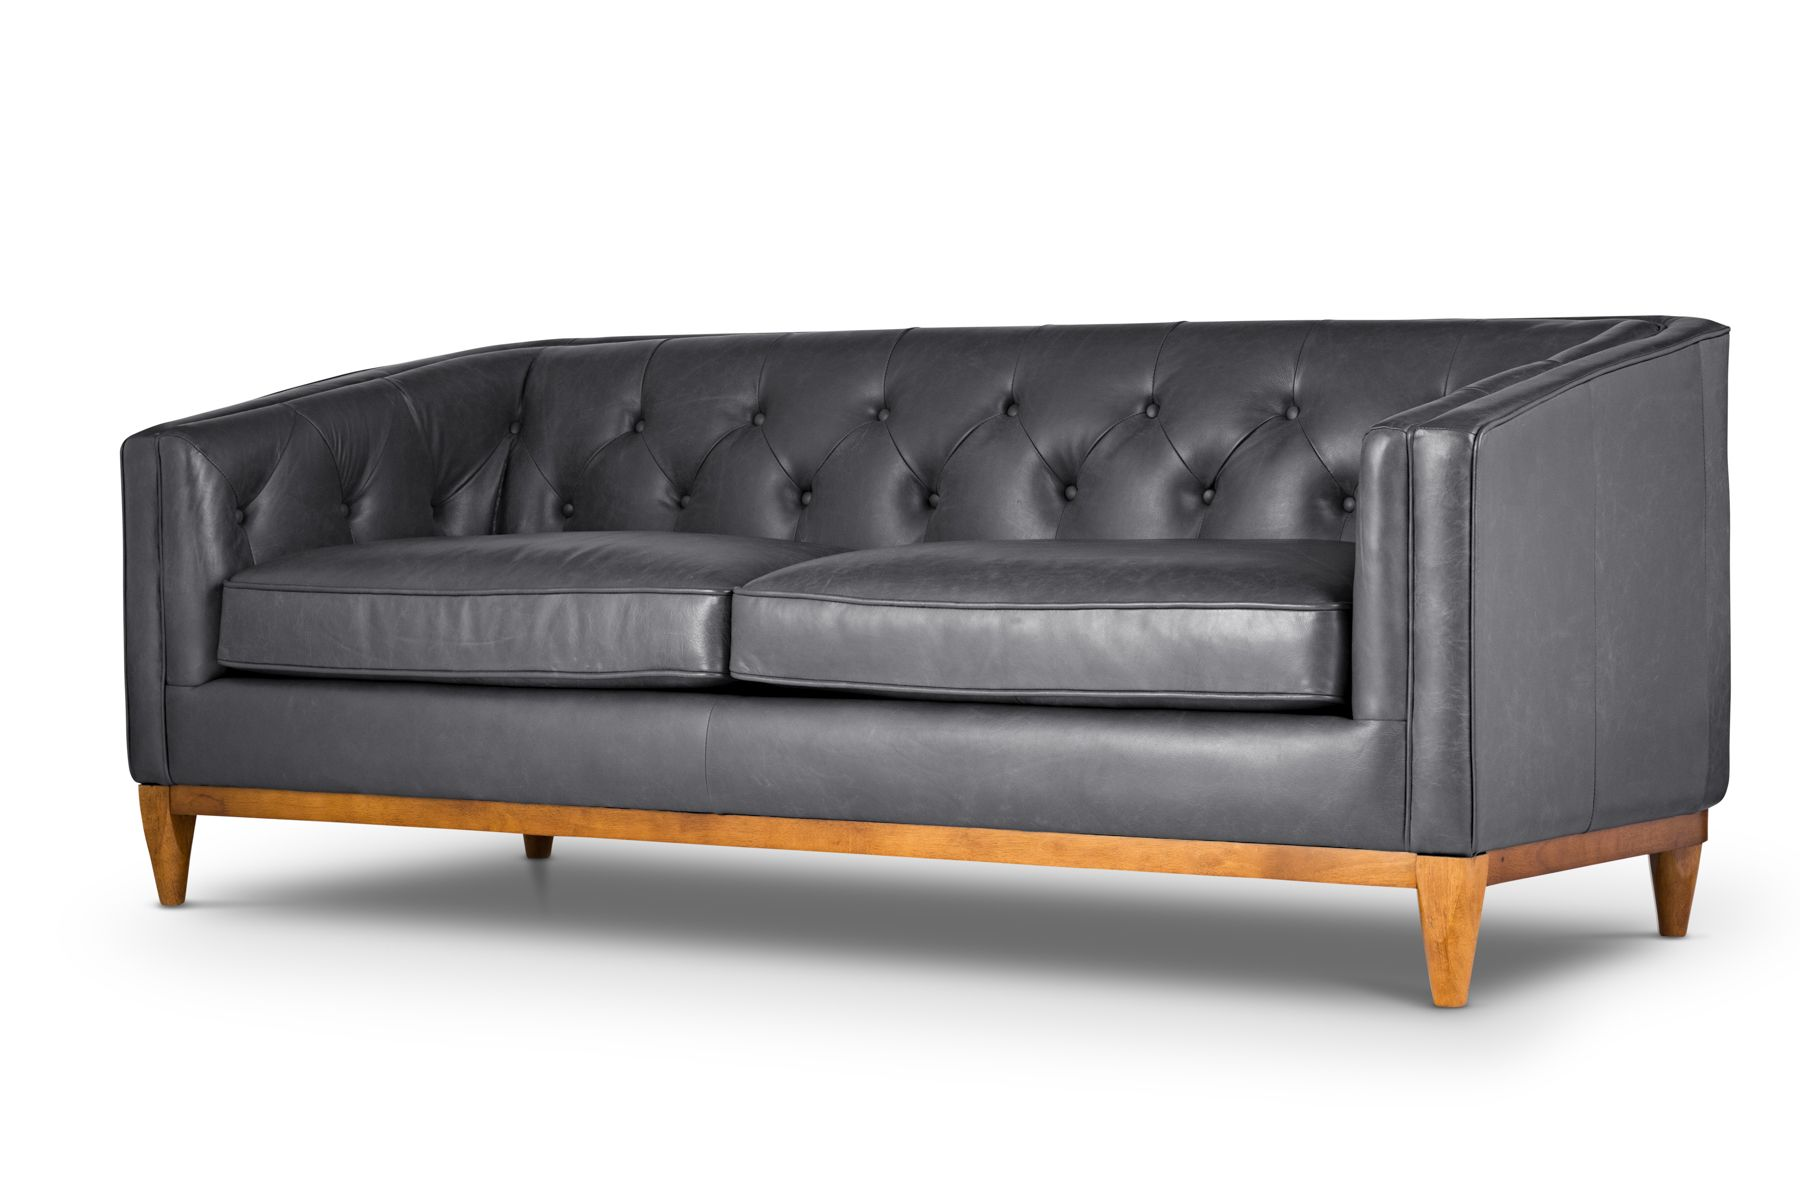 Grey Tufted Leather Sofa | Natale In Oxford Grey By Jovili. Style/Type